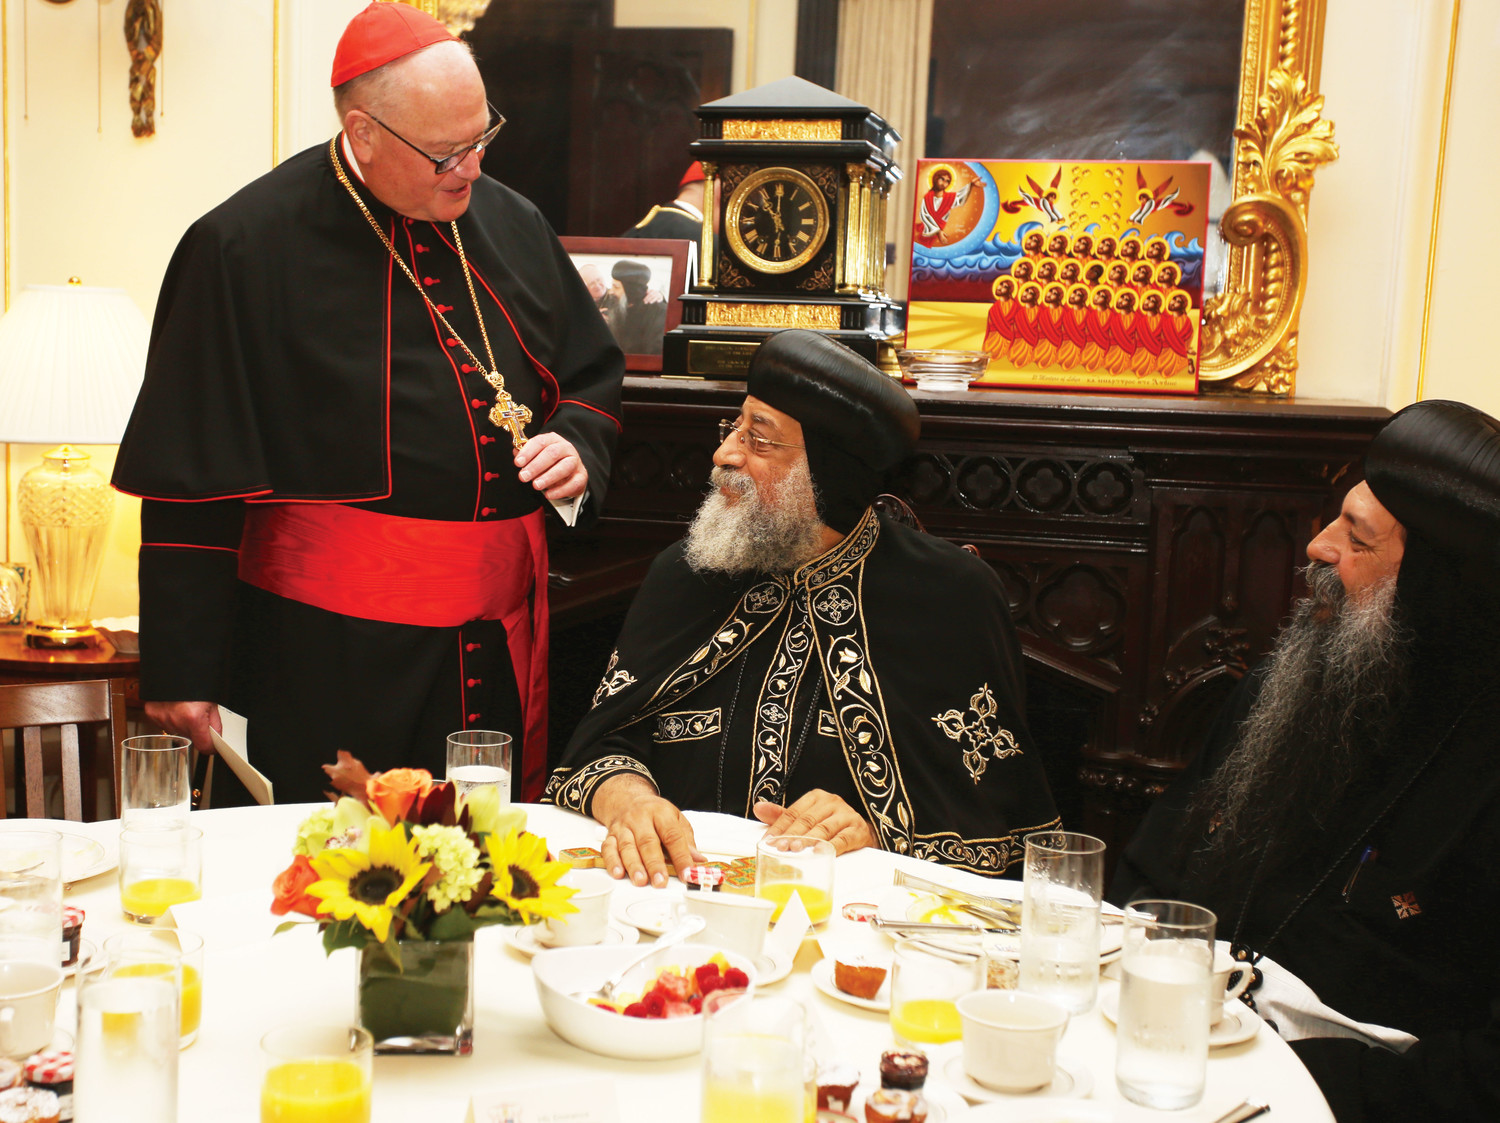 Cardinal Dolan speaks with Coptic Orthodox Christian Pope Tawadros II, center, and Bishop David of the Coptic Orthodox Diocese of New York and New England during a breakfast he hosted Sept. 20.